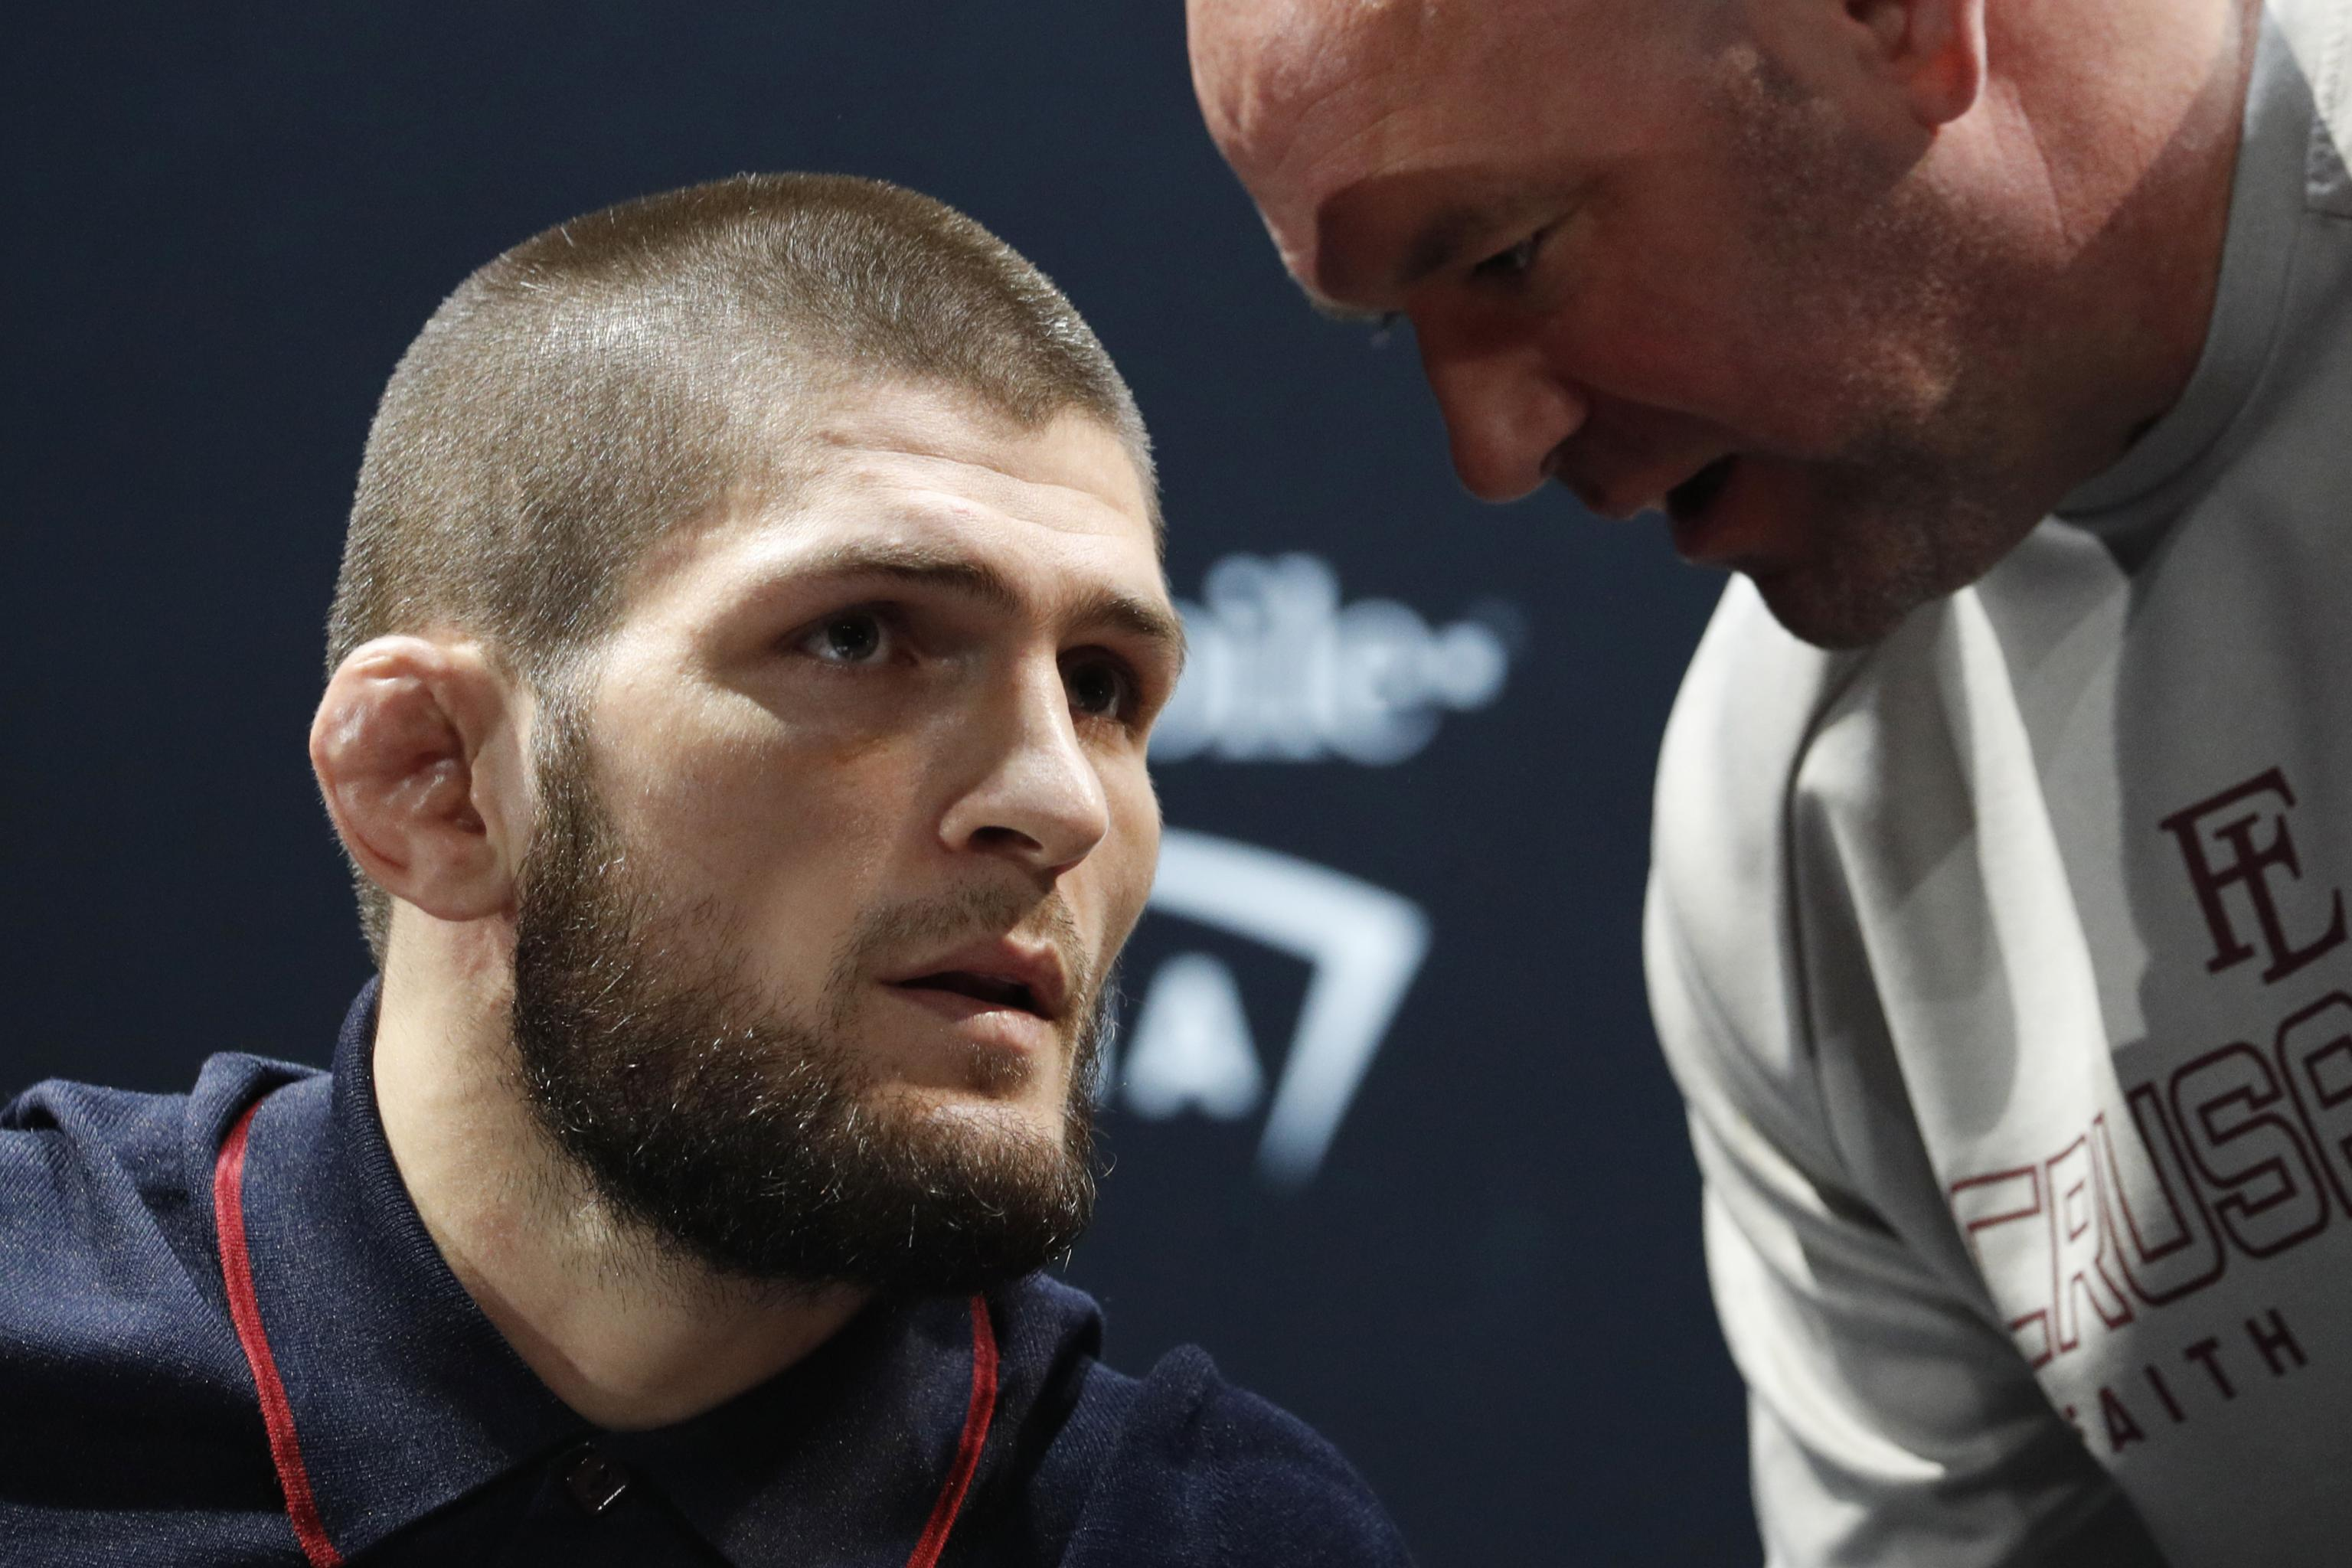 Khabib vs Tony, UFC and Dana White